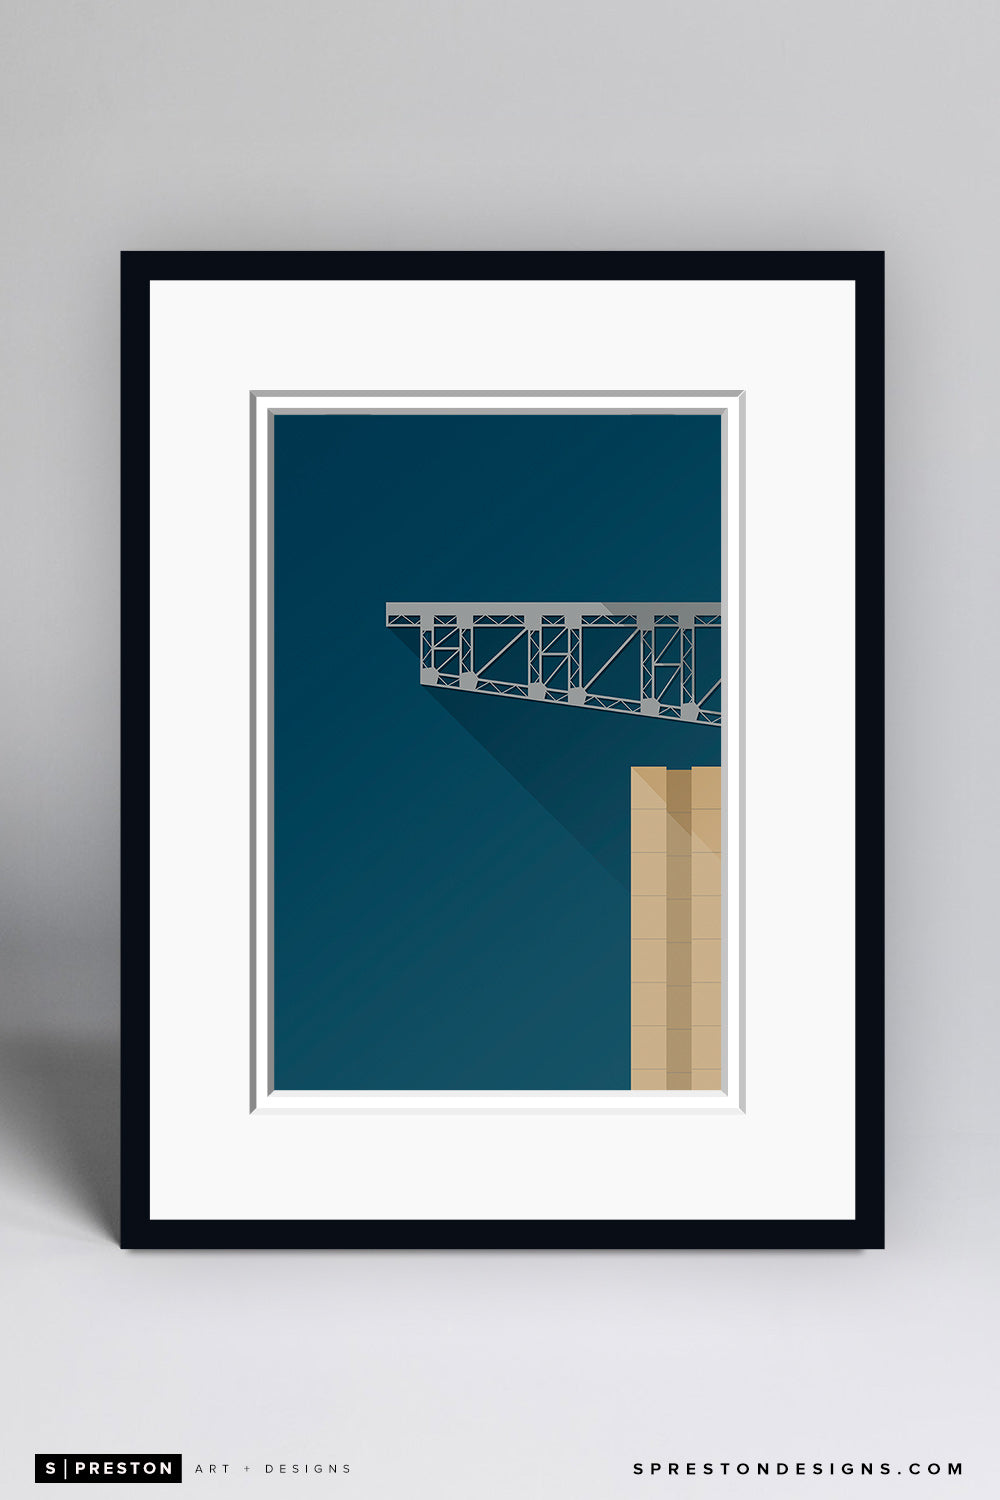 Minimalist NRG Stadium - Houston Texans - S. Preston